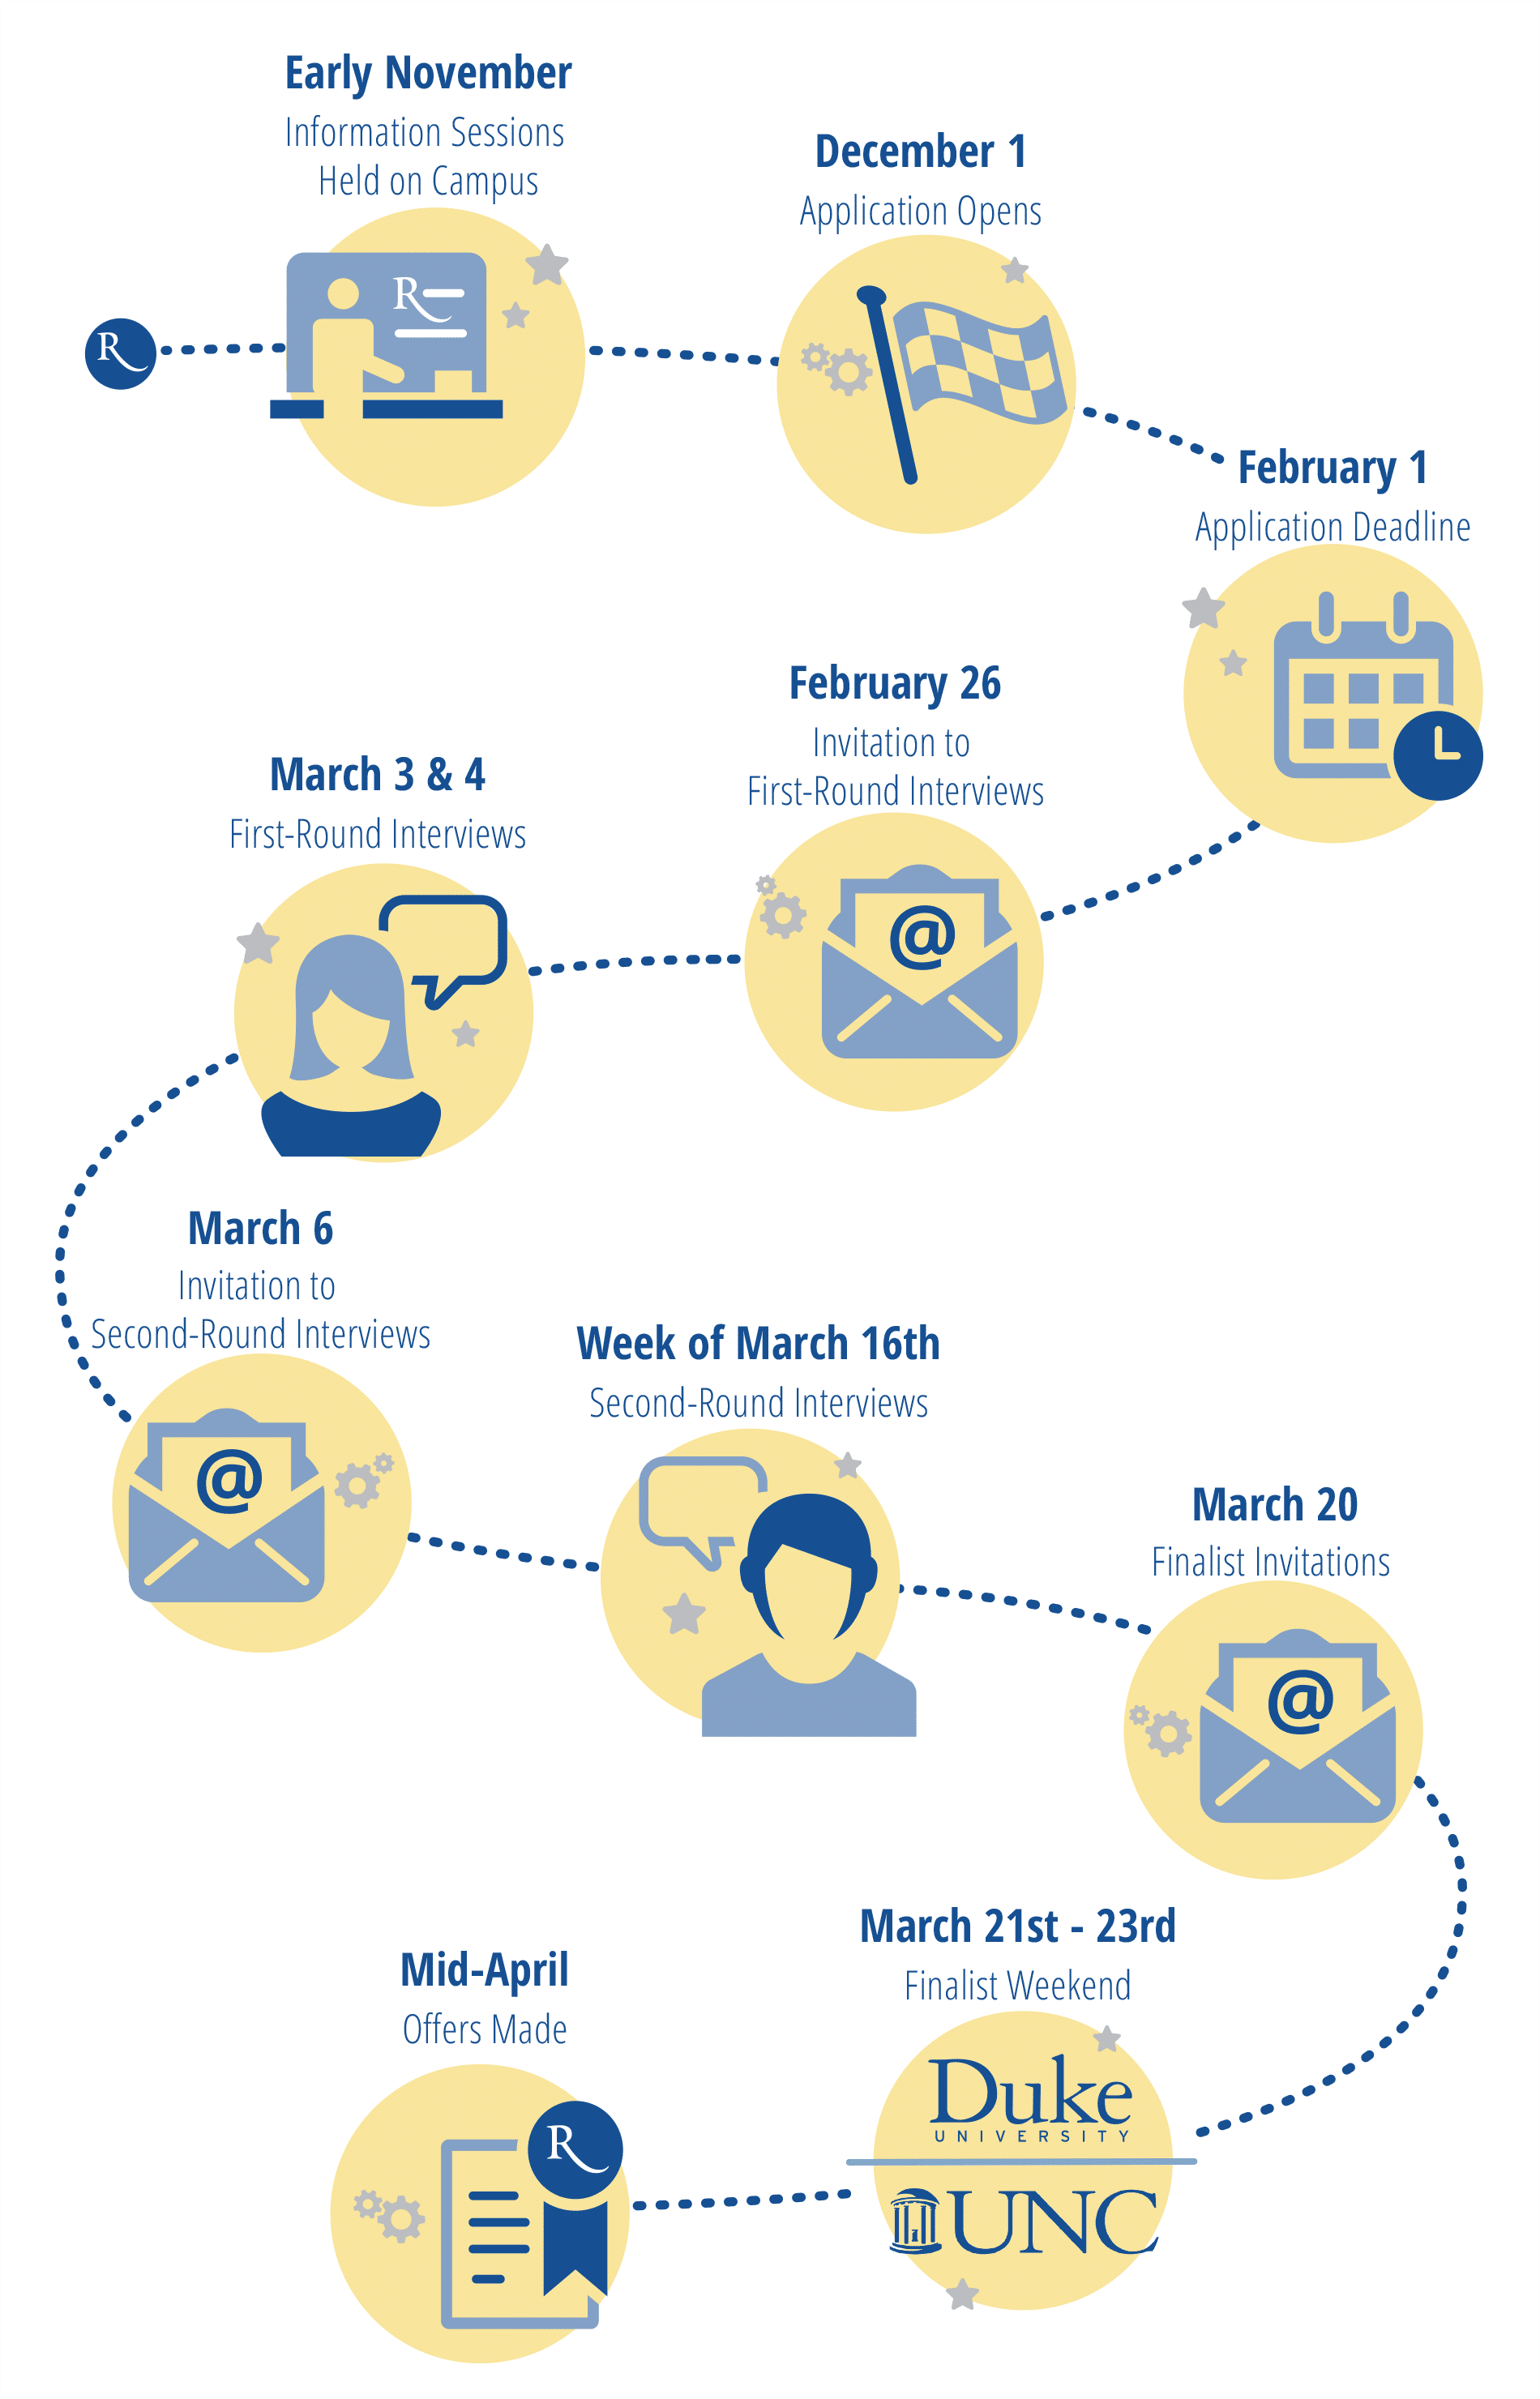 Duke Unc Timeline@2x UPDATED